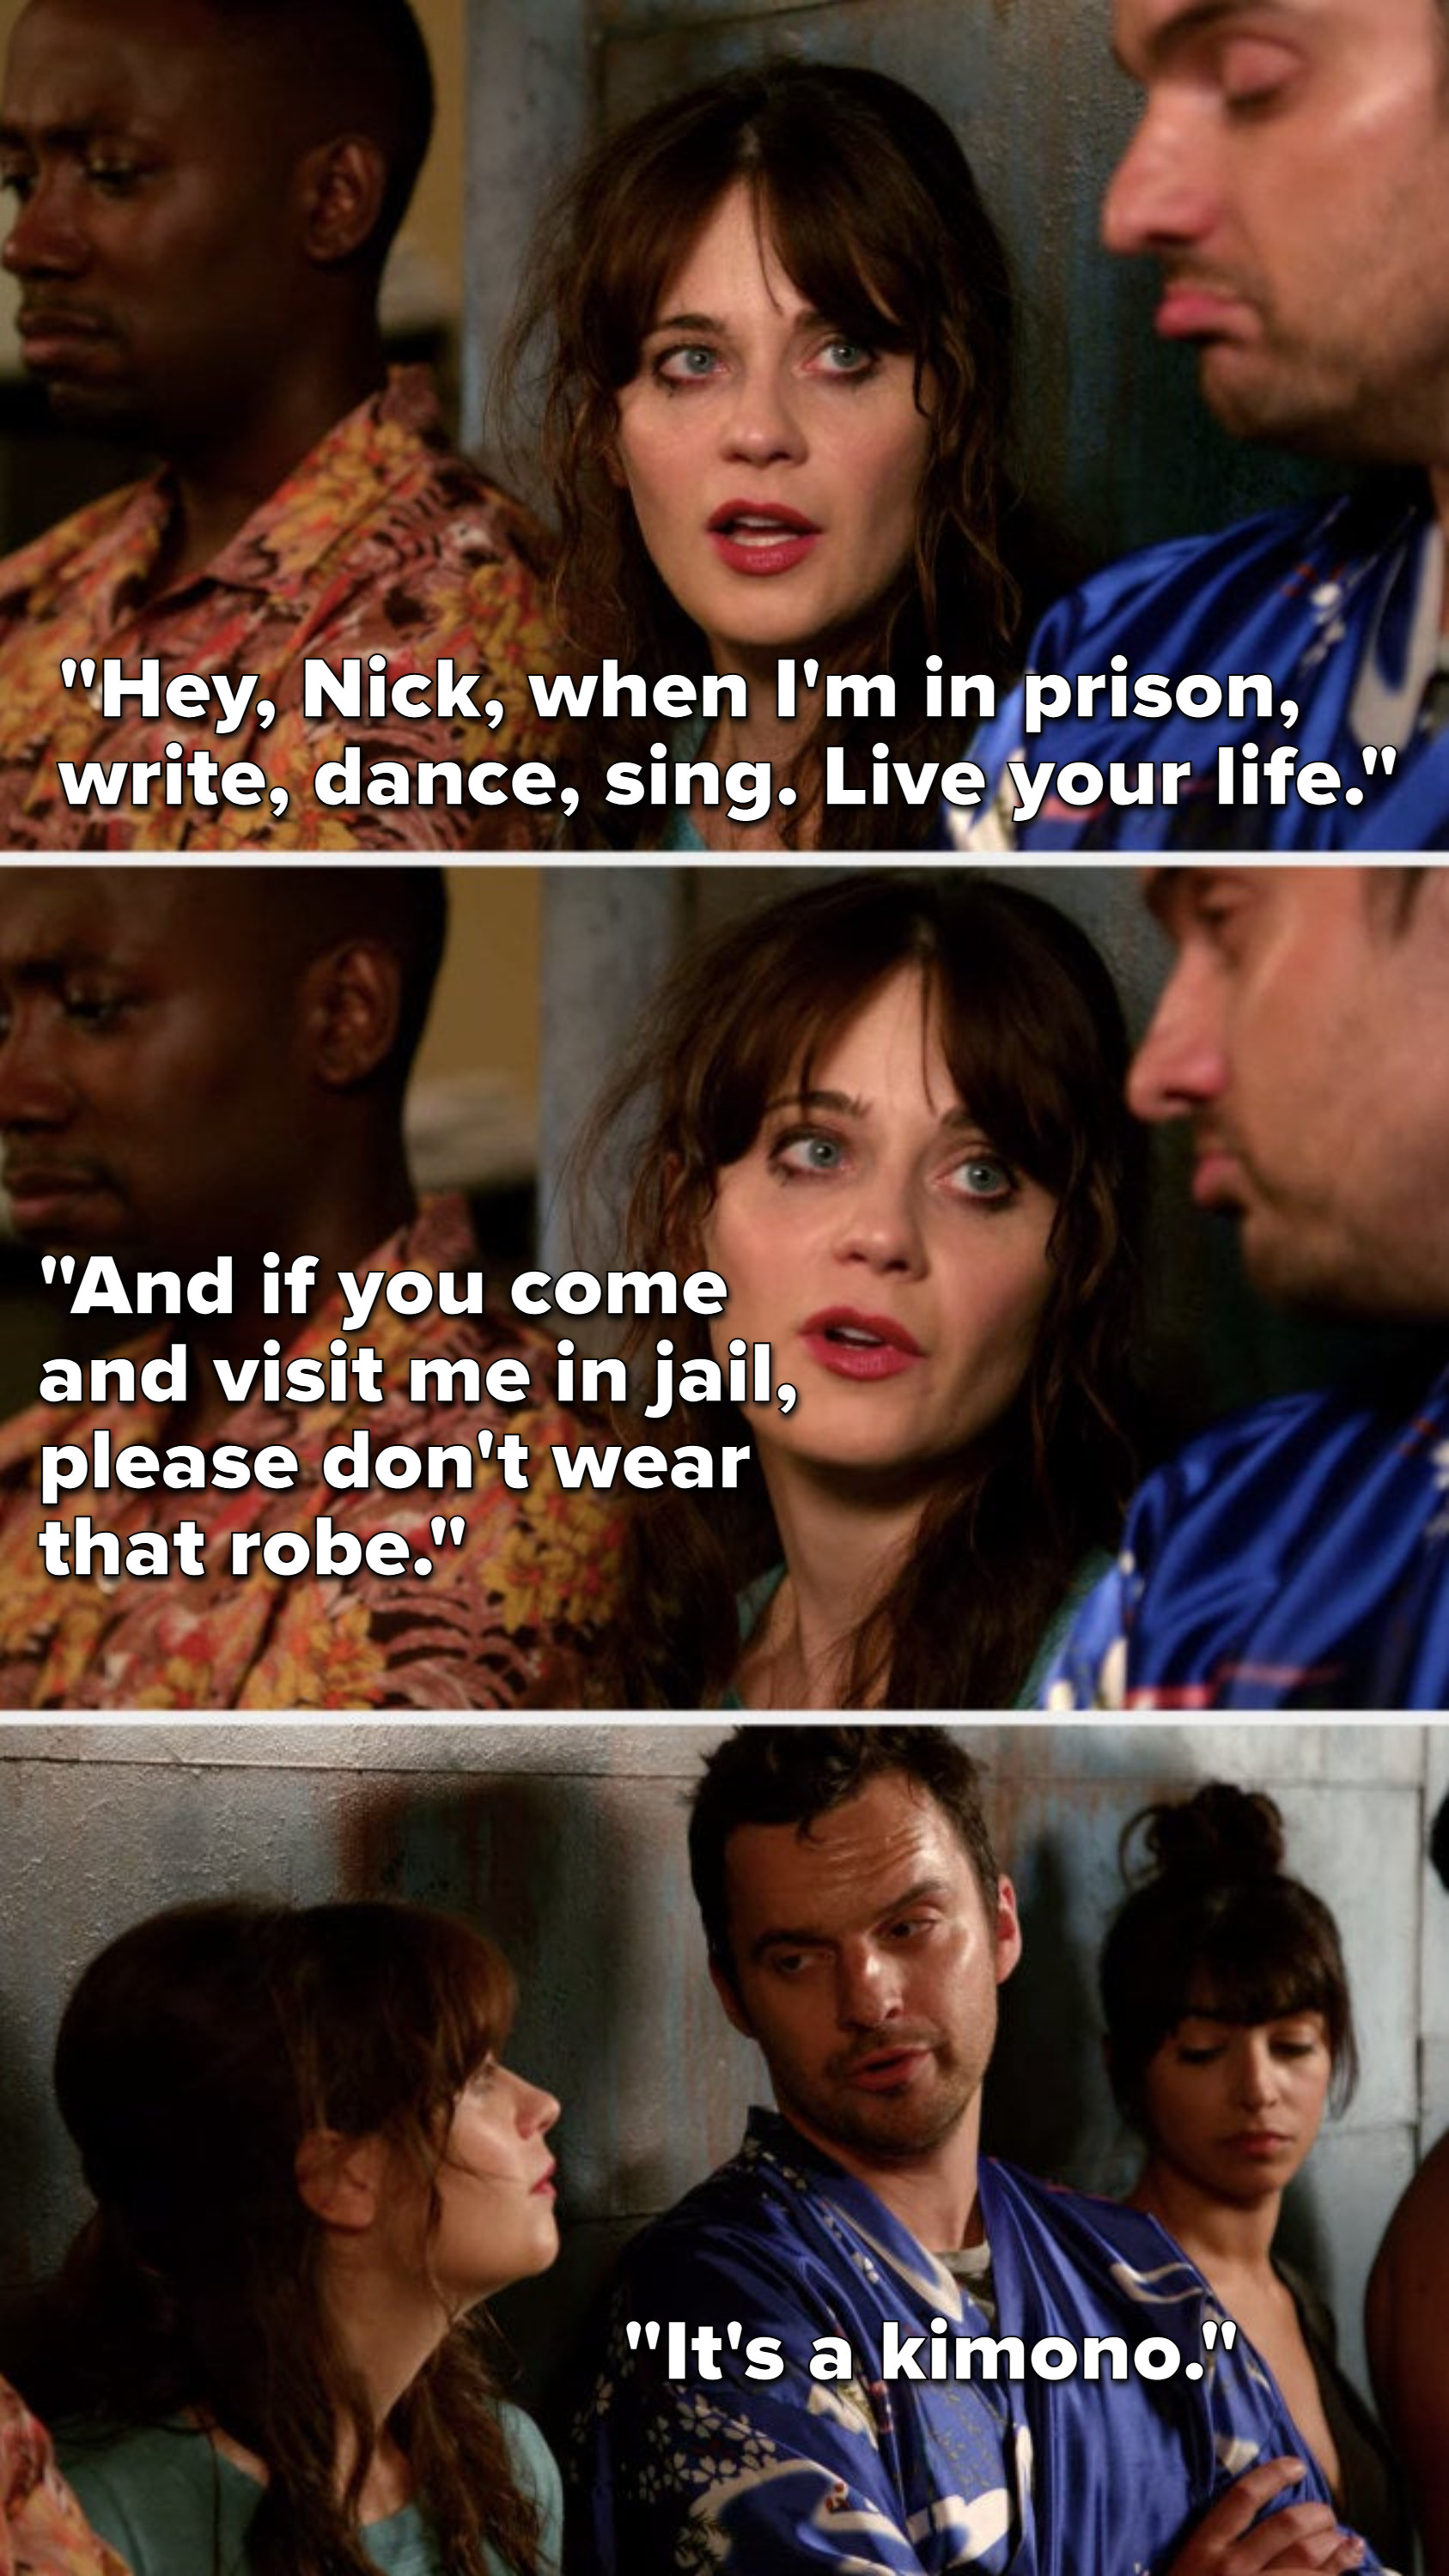 """Jess says, """"Hey Nick, when I'm in prison, write, dance, sing, live your life, and if you come and visit me in jail, please don't wear that robe,"""" and Nick says, """"It's a kimono"""""""